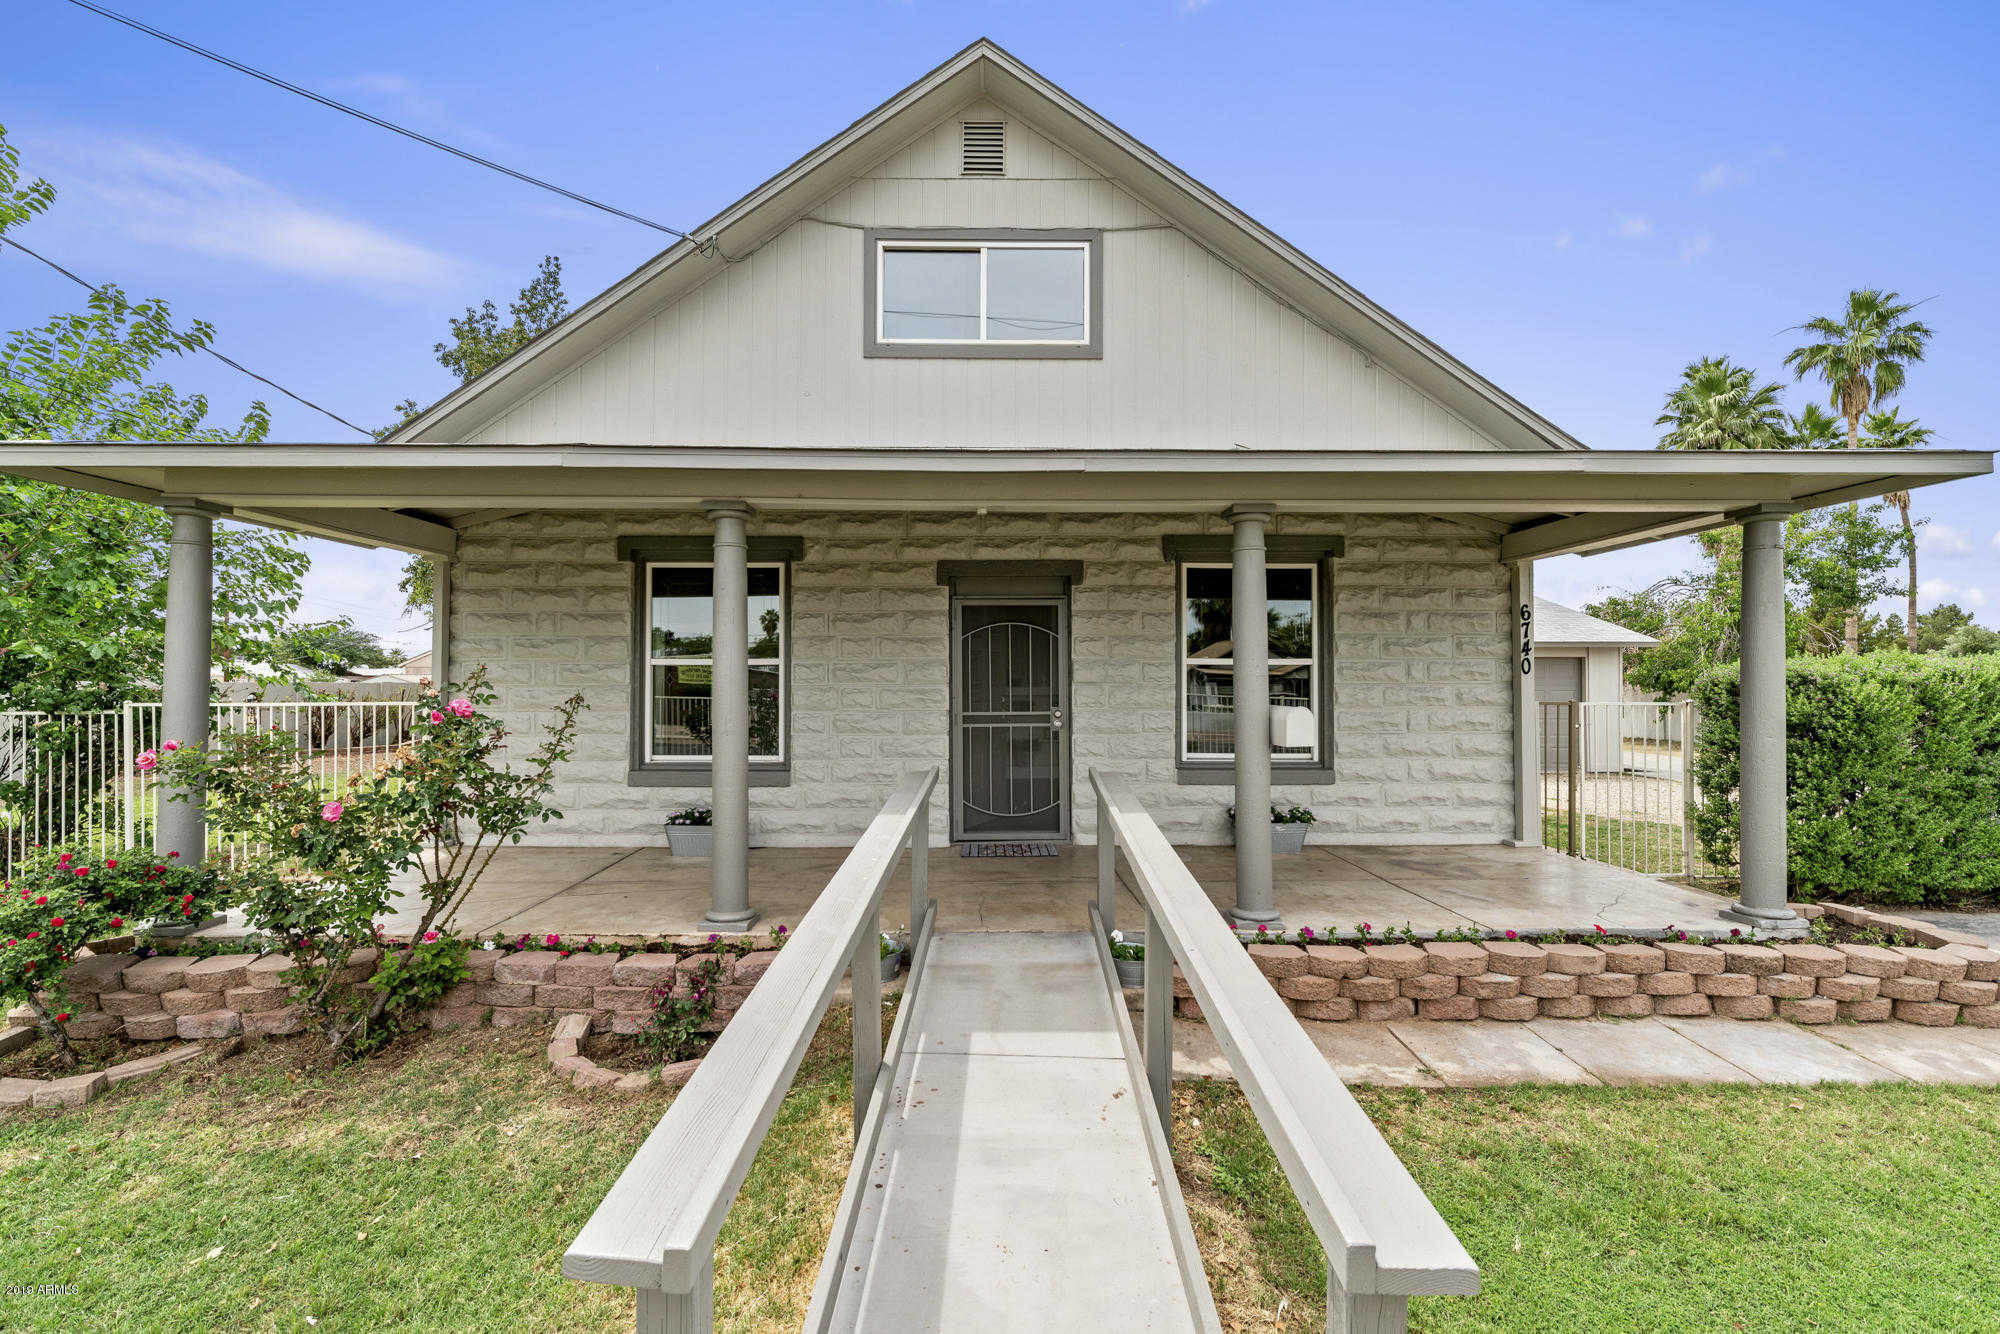 $359,900 - 3Br/2Ba - Home for Sale in Orchard Add Blk 11 Lot 1, Glendale